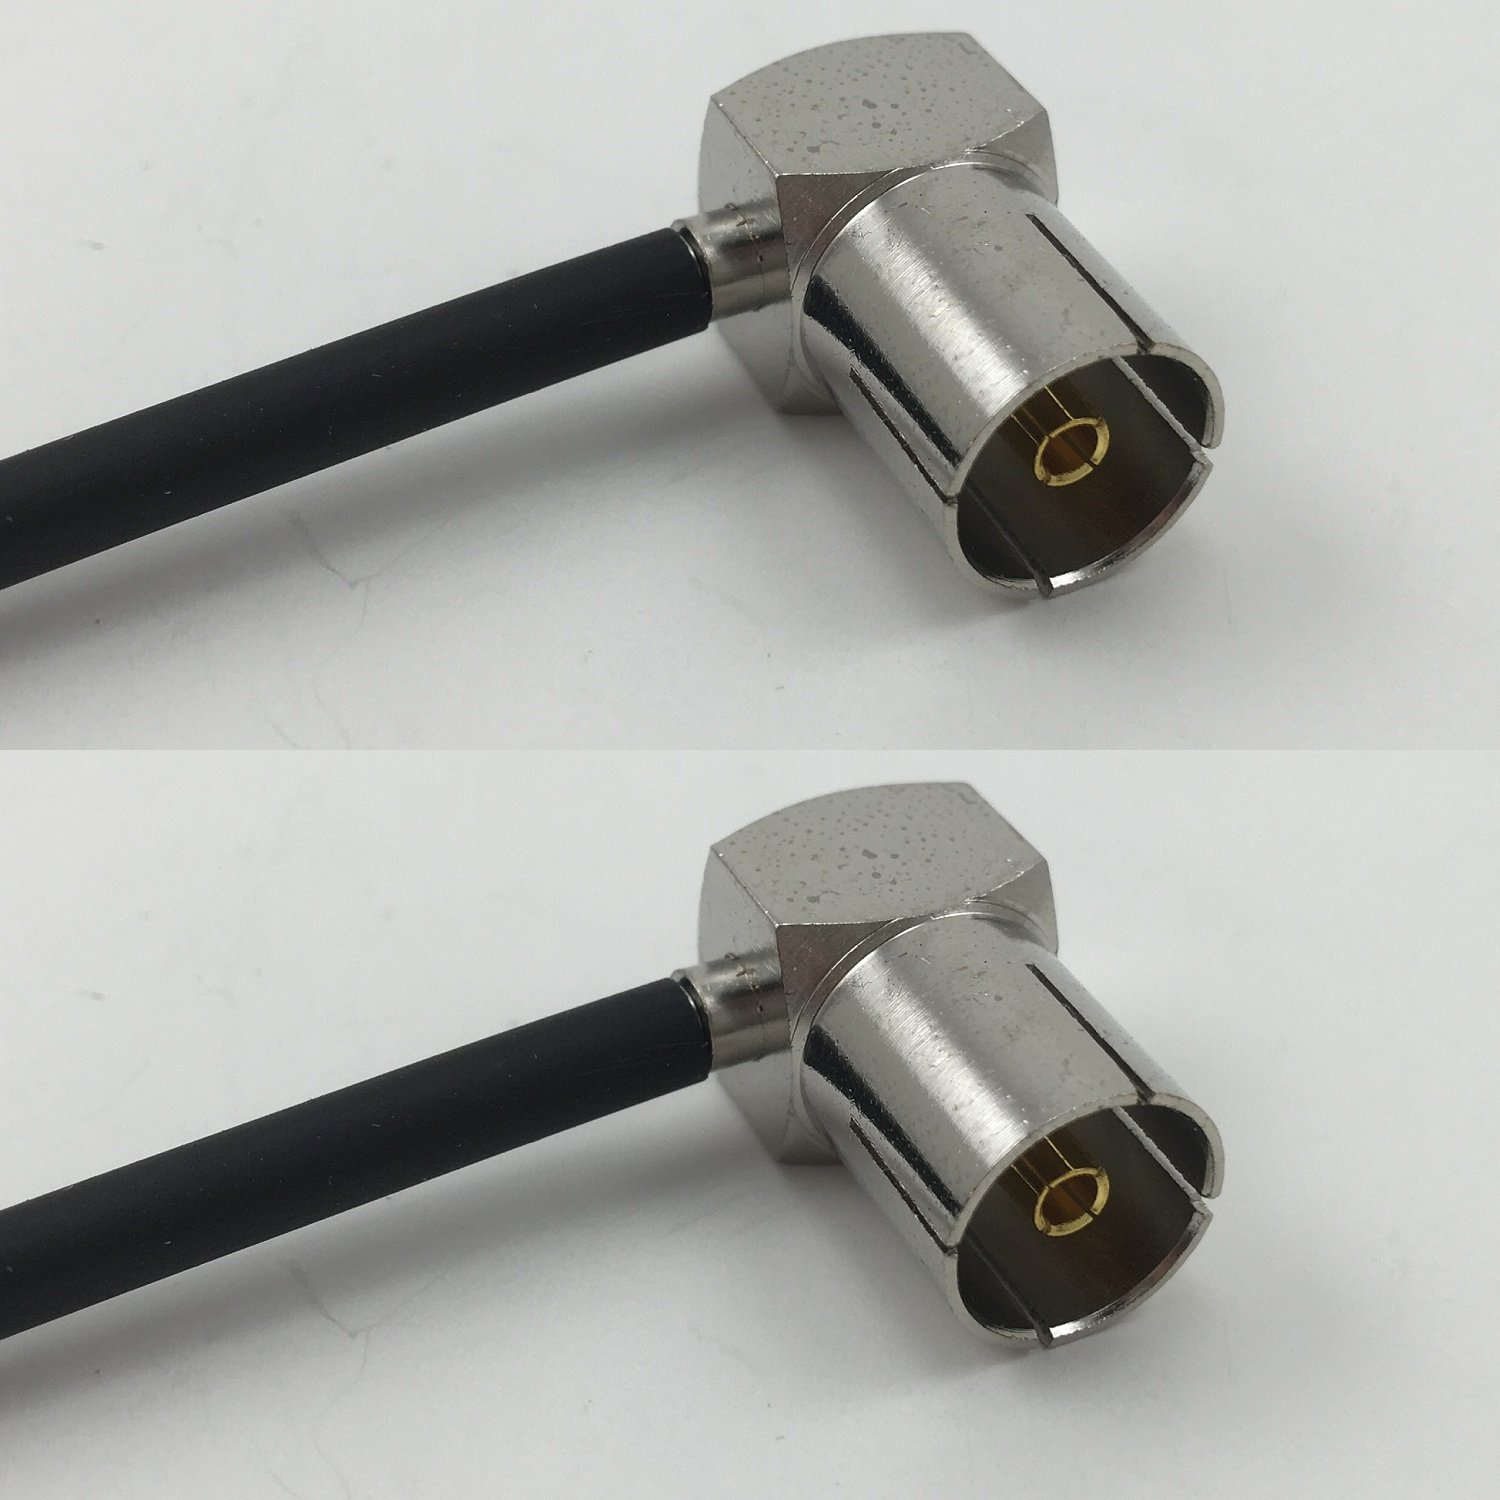 6 inch RG188 DVB Pal Female Angle to DVB Pal Female Angle Pigtail Jumper RF coaxial cable 50ohm High Quality Quick USA Shipping